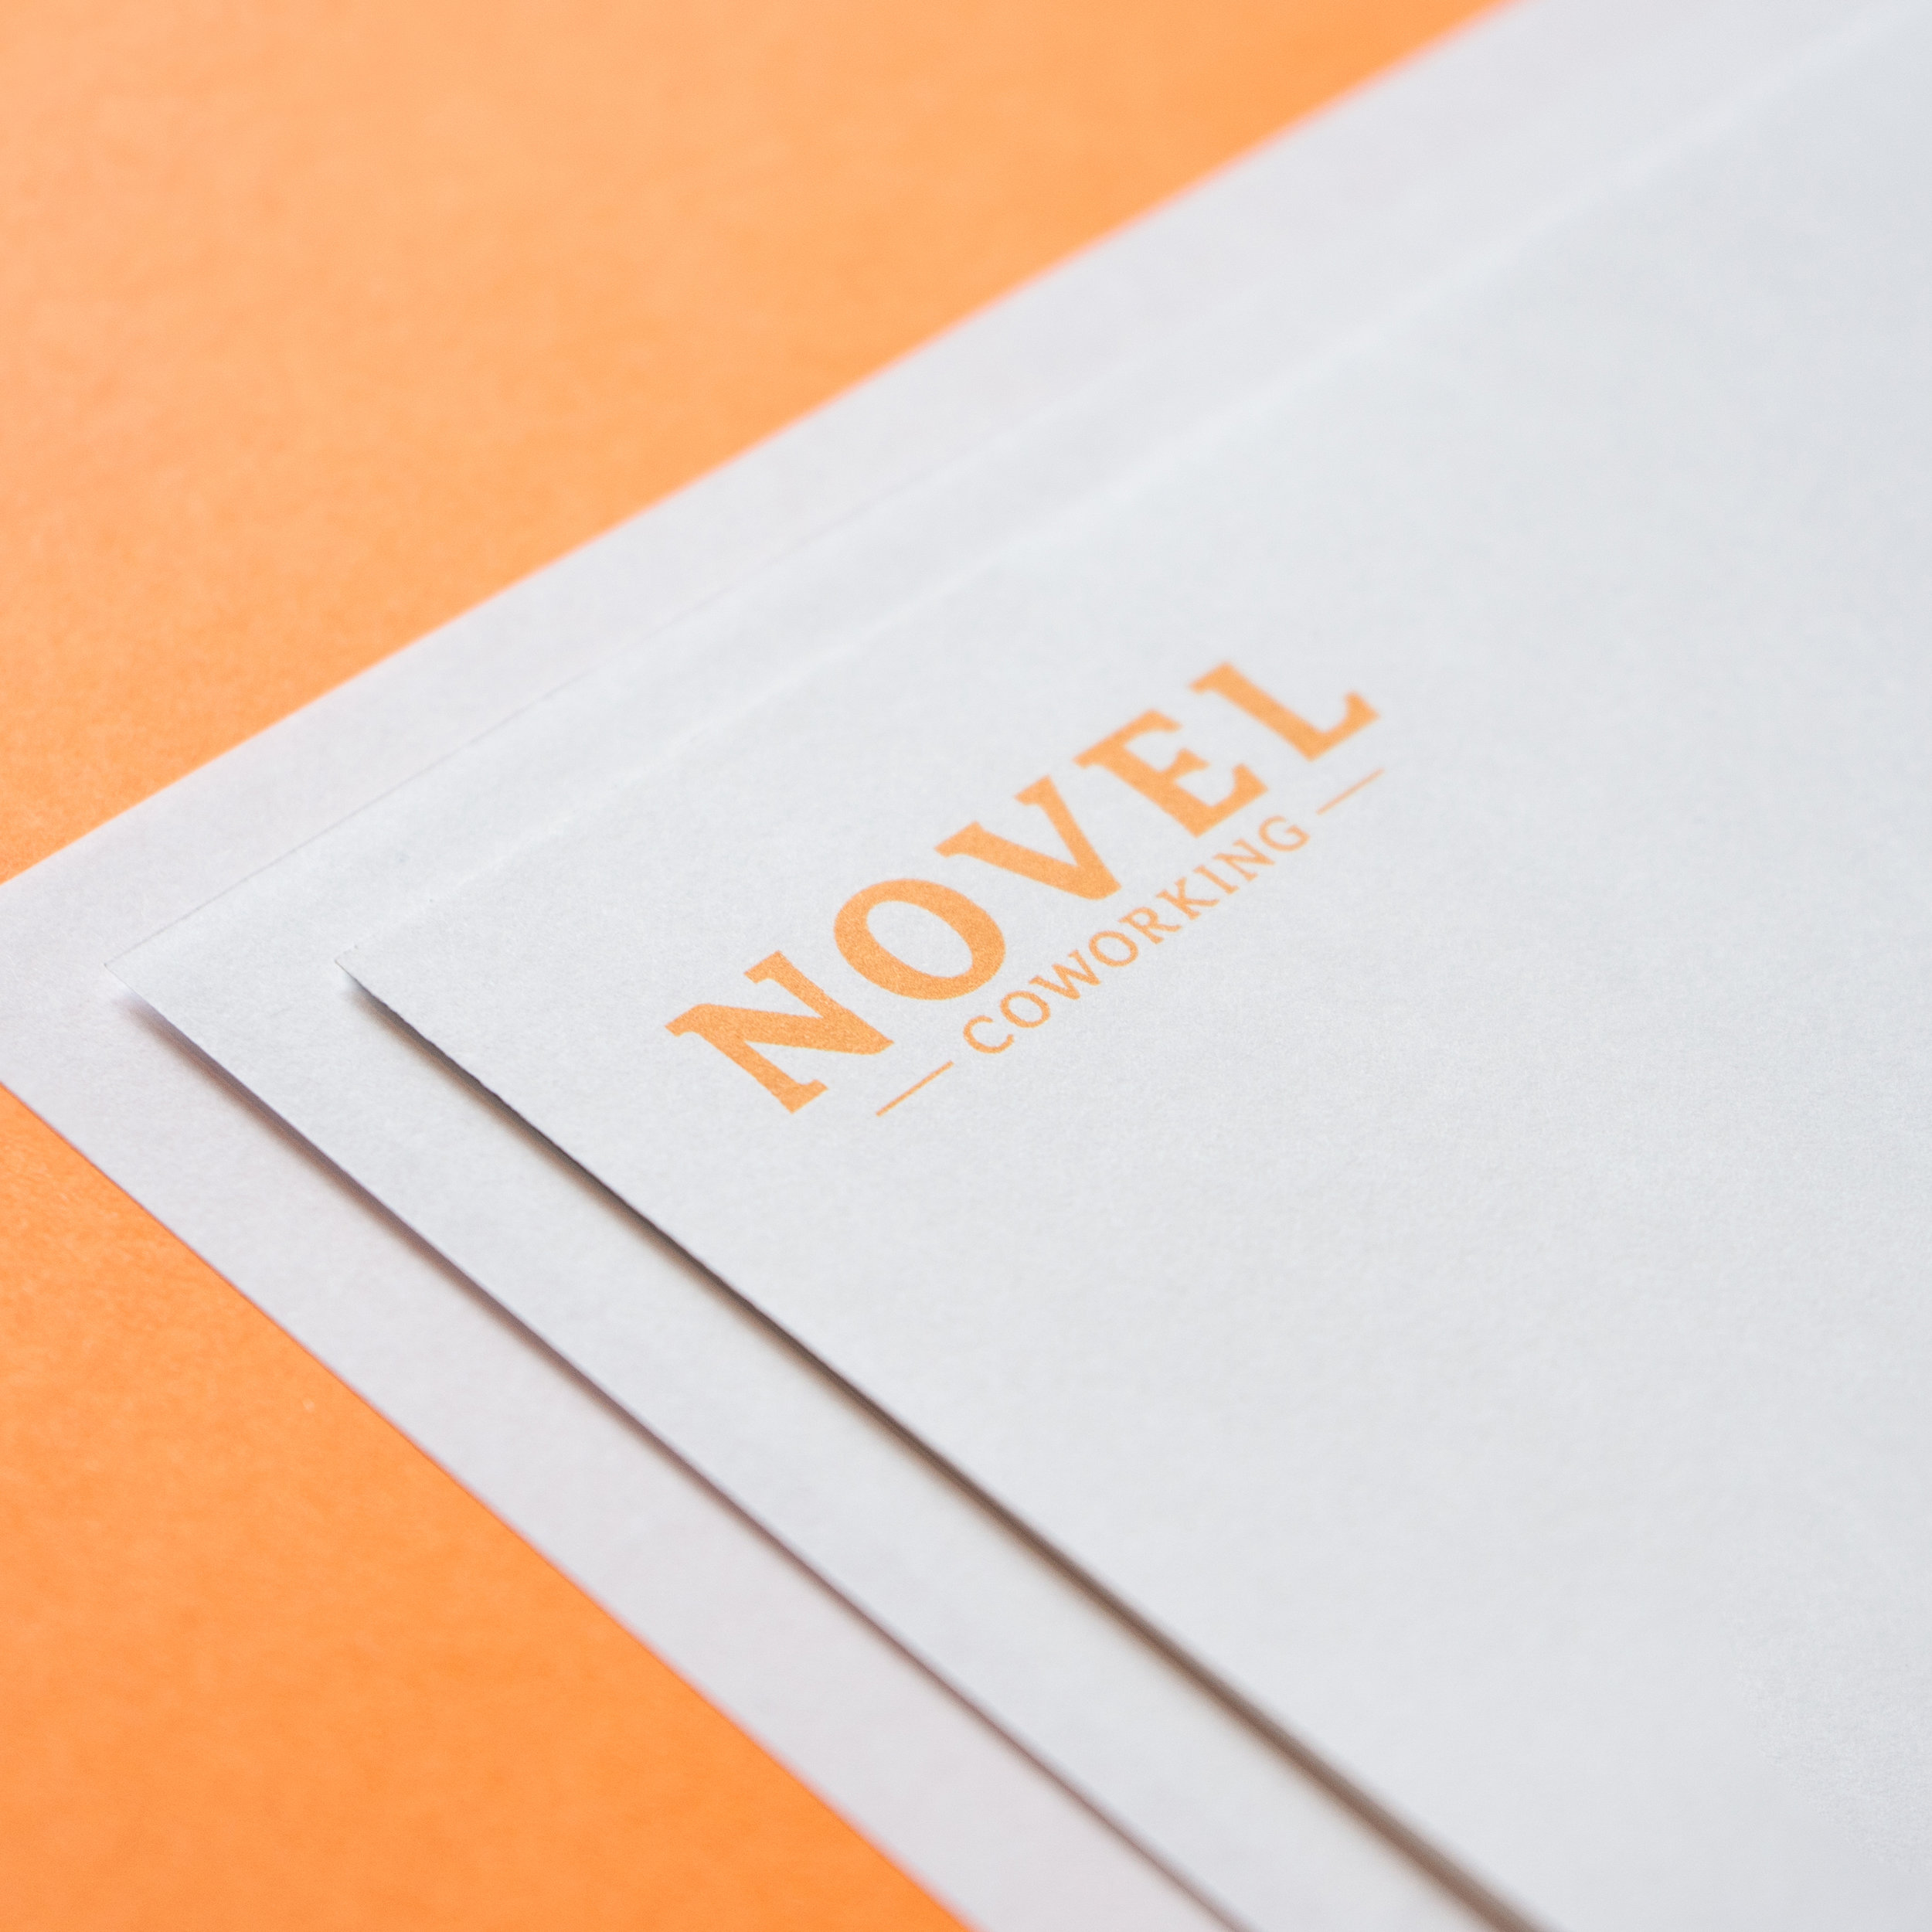 Novel Coworking   Novel Coworking approached us as they were preparing to rebrand their spaces and looking to create a new identity for themselves.